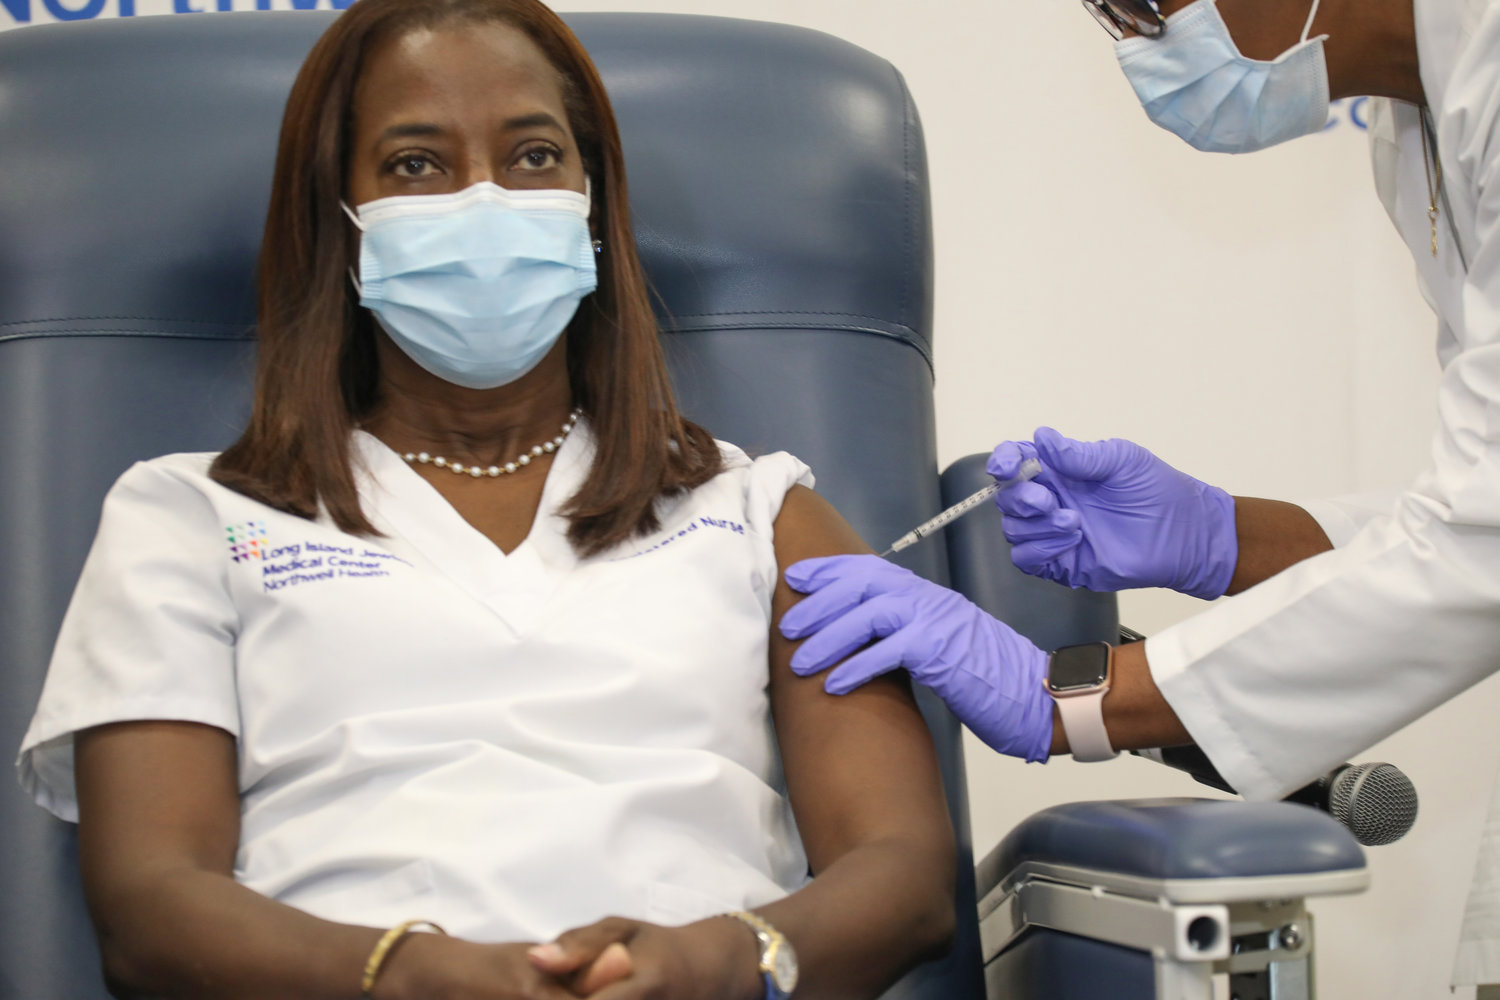 Northwell Health nurse Sandra Lindsay, of Port Washington, became the first person in New York state to receive Pfizer's Covid-19 vaccine on Monday.